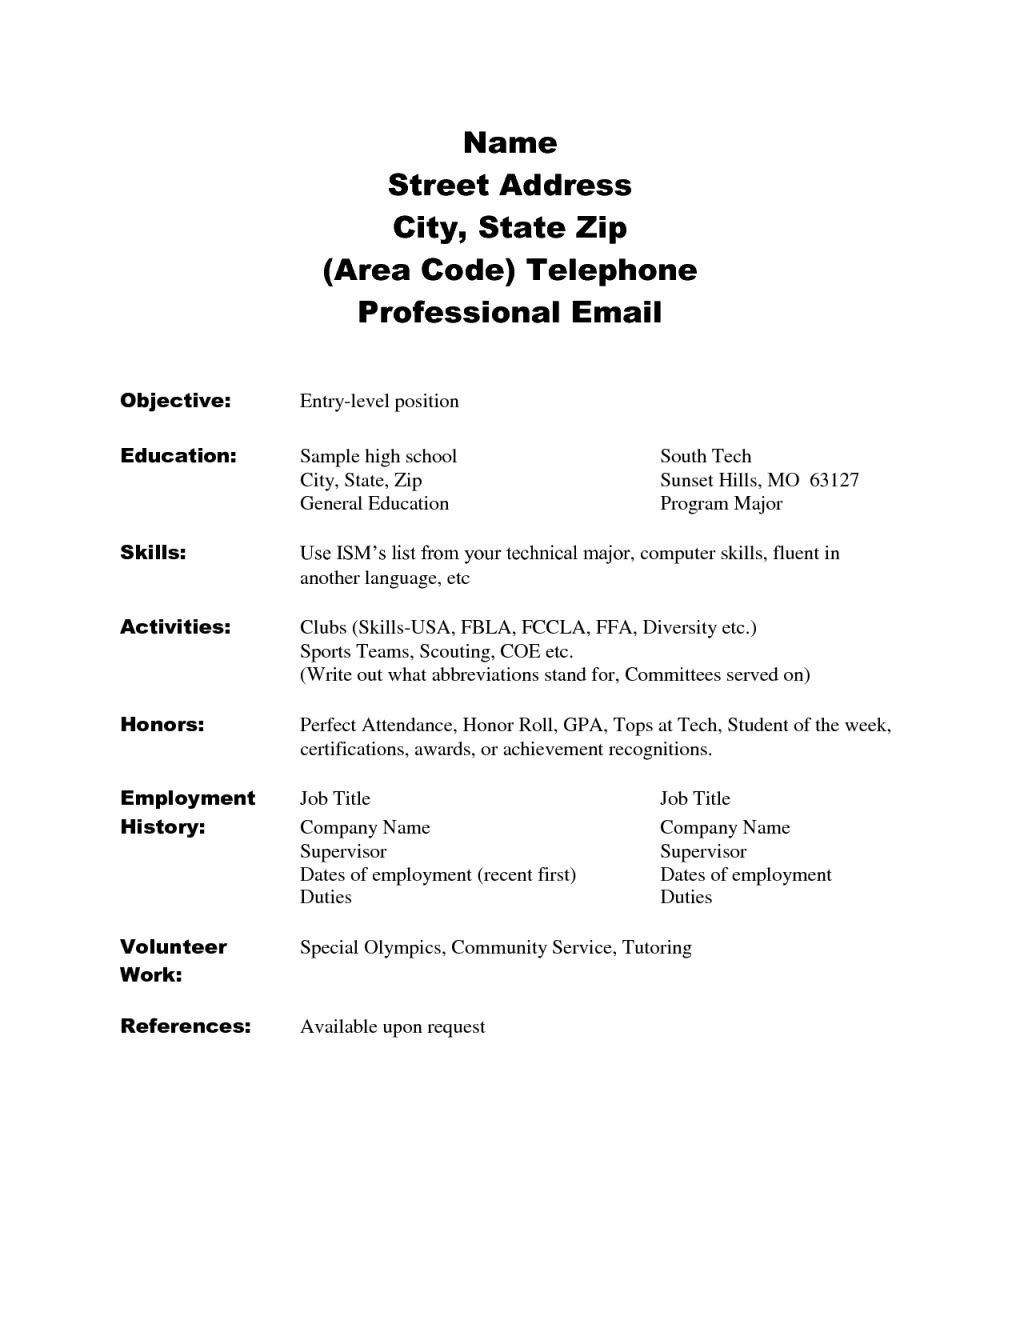 Cute Resume Skills List For High School Students Images Entry